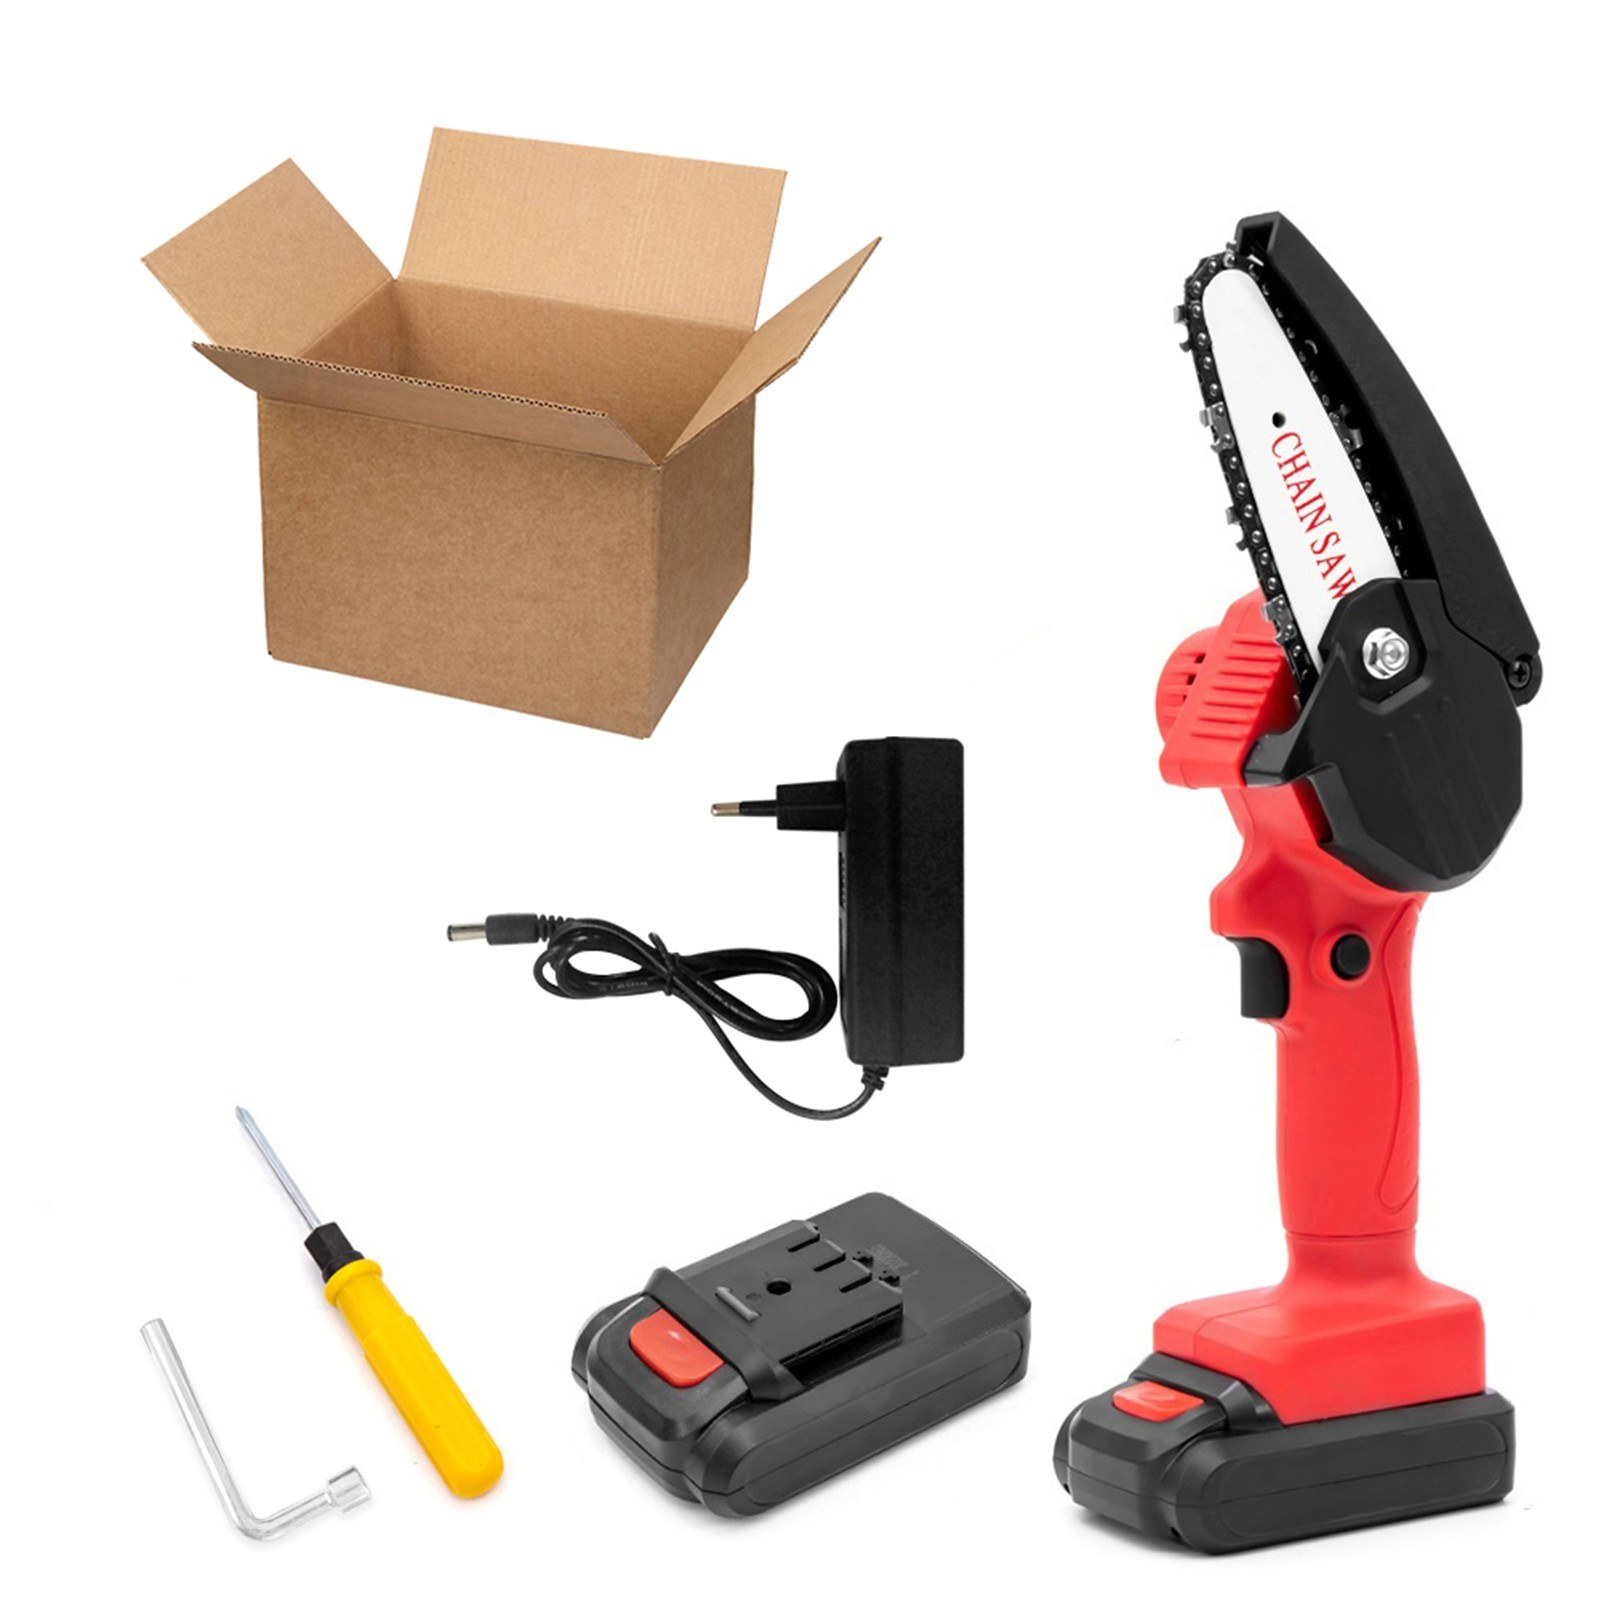 Tomtop - [EU Warehouse] 220V Rechargeable Handheld Portable Electric Pruning Saw, $55.99 (Inclusive of VAT)